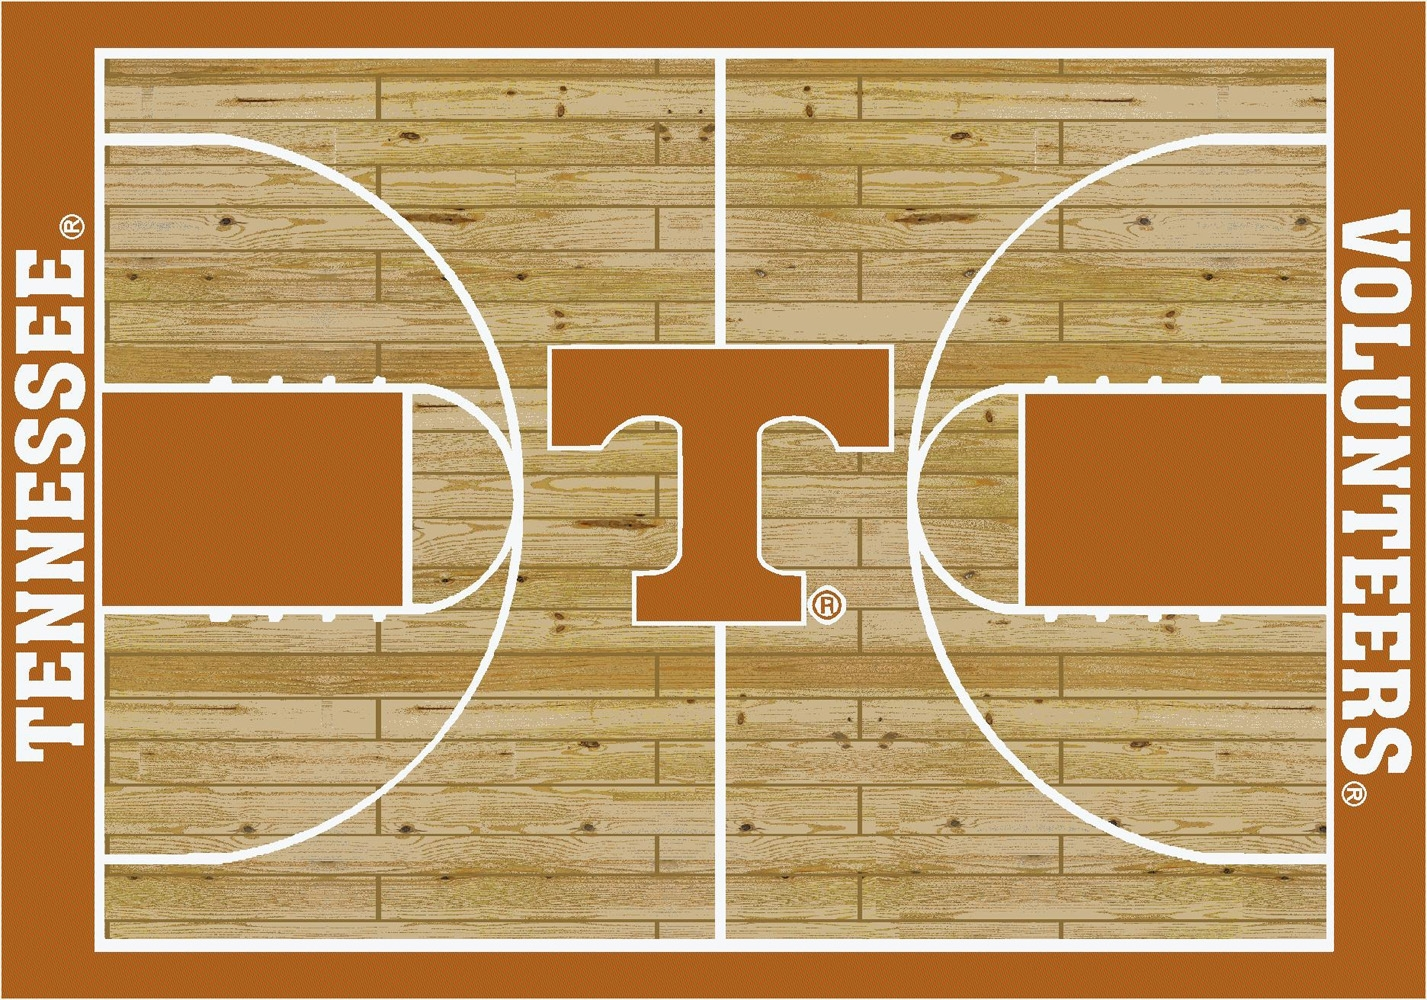 College Basketball Court Tennessee 100 Stainmaster